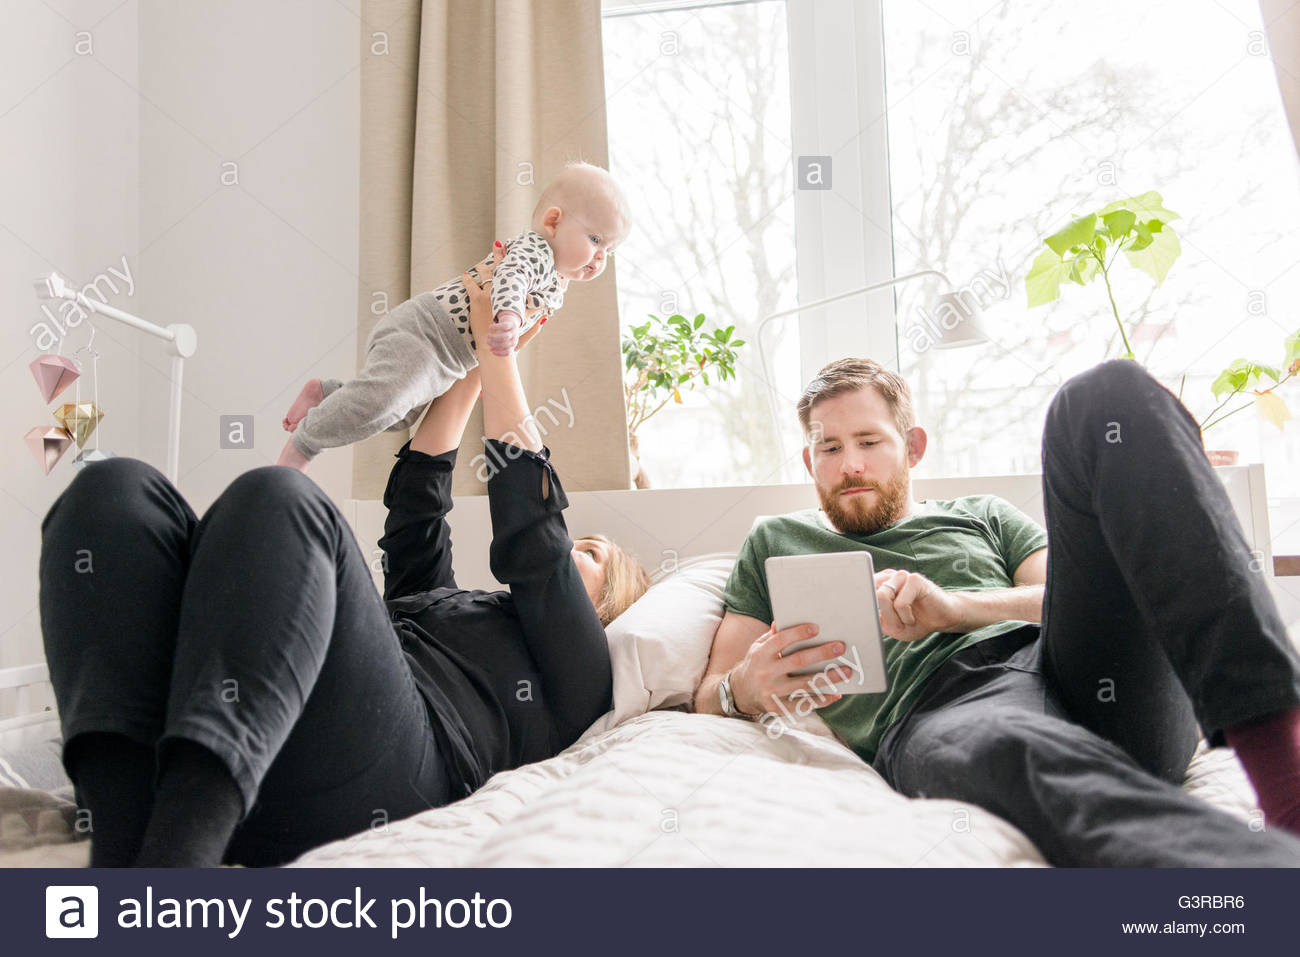 Sweden, Family with baby boy (0-1 months) relaxing in bed - Stock Image